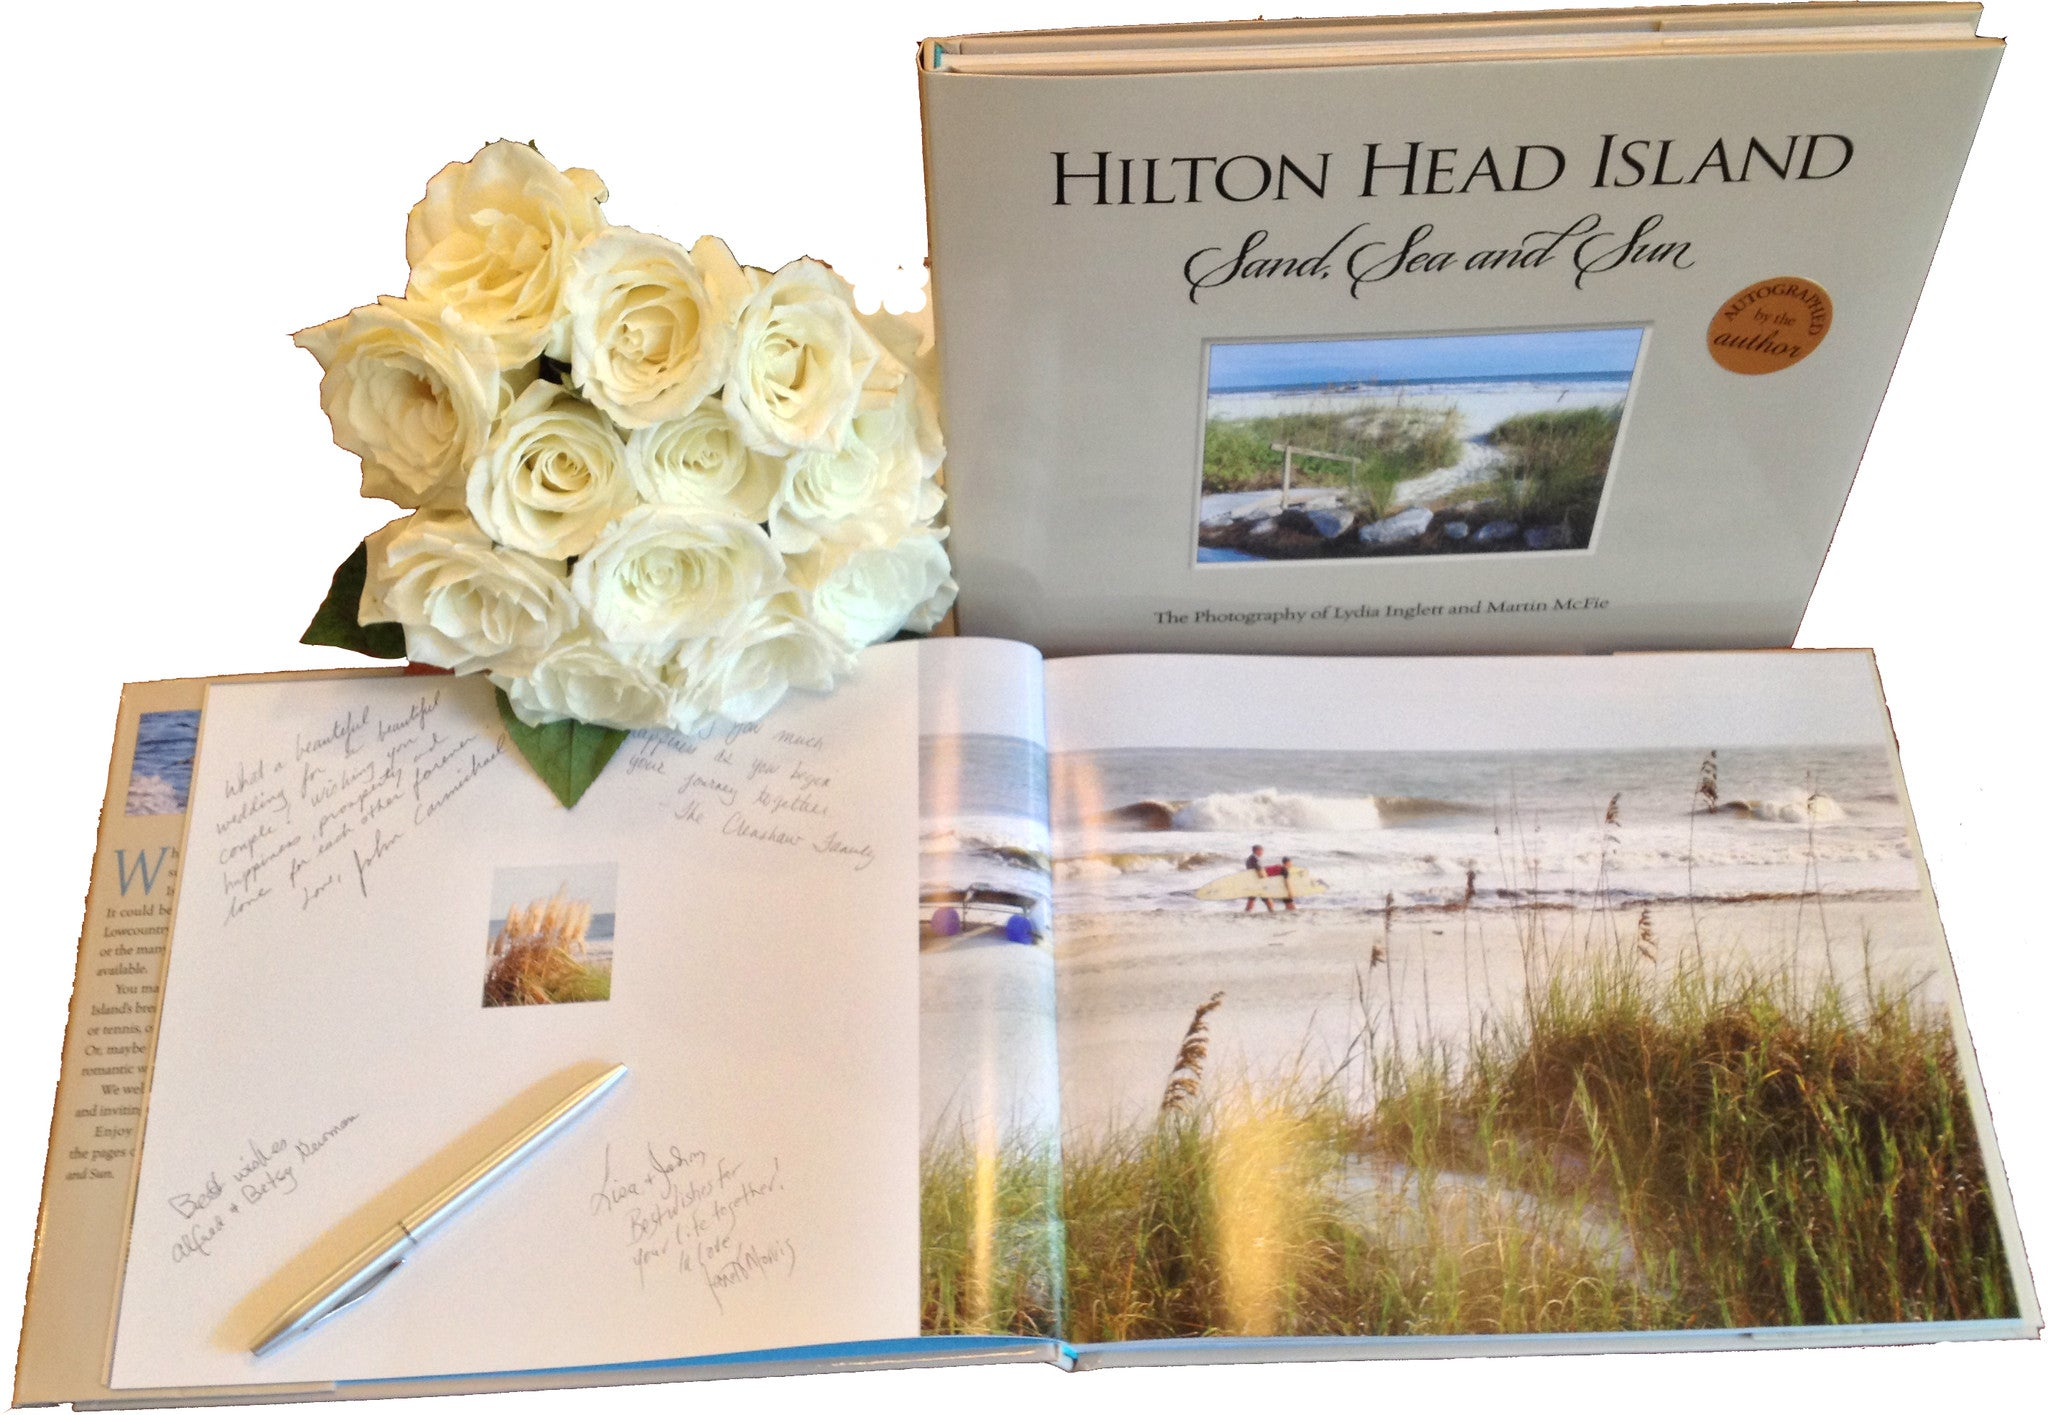 Great wedding signing book: Hilton Head Island, Sand, Sea and Sun Lydia Inglett and Starbooks